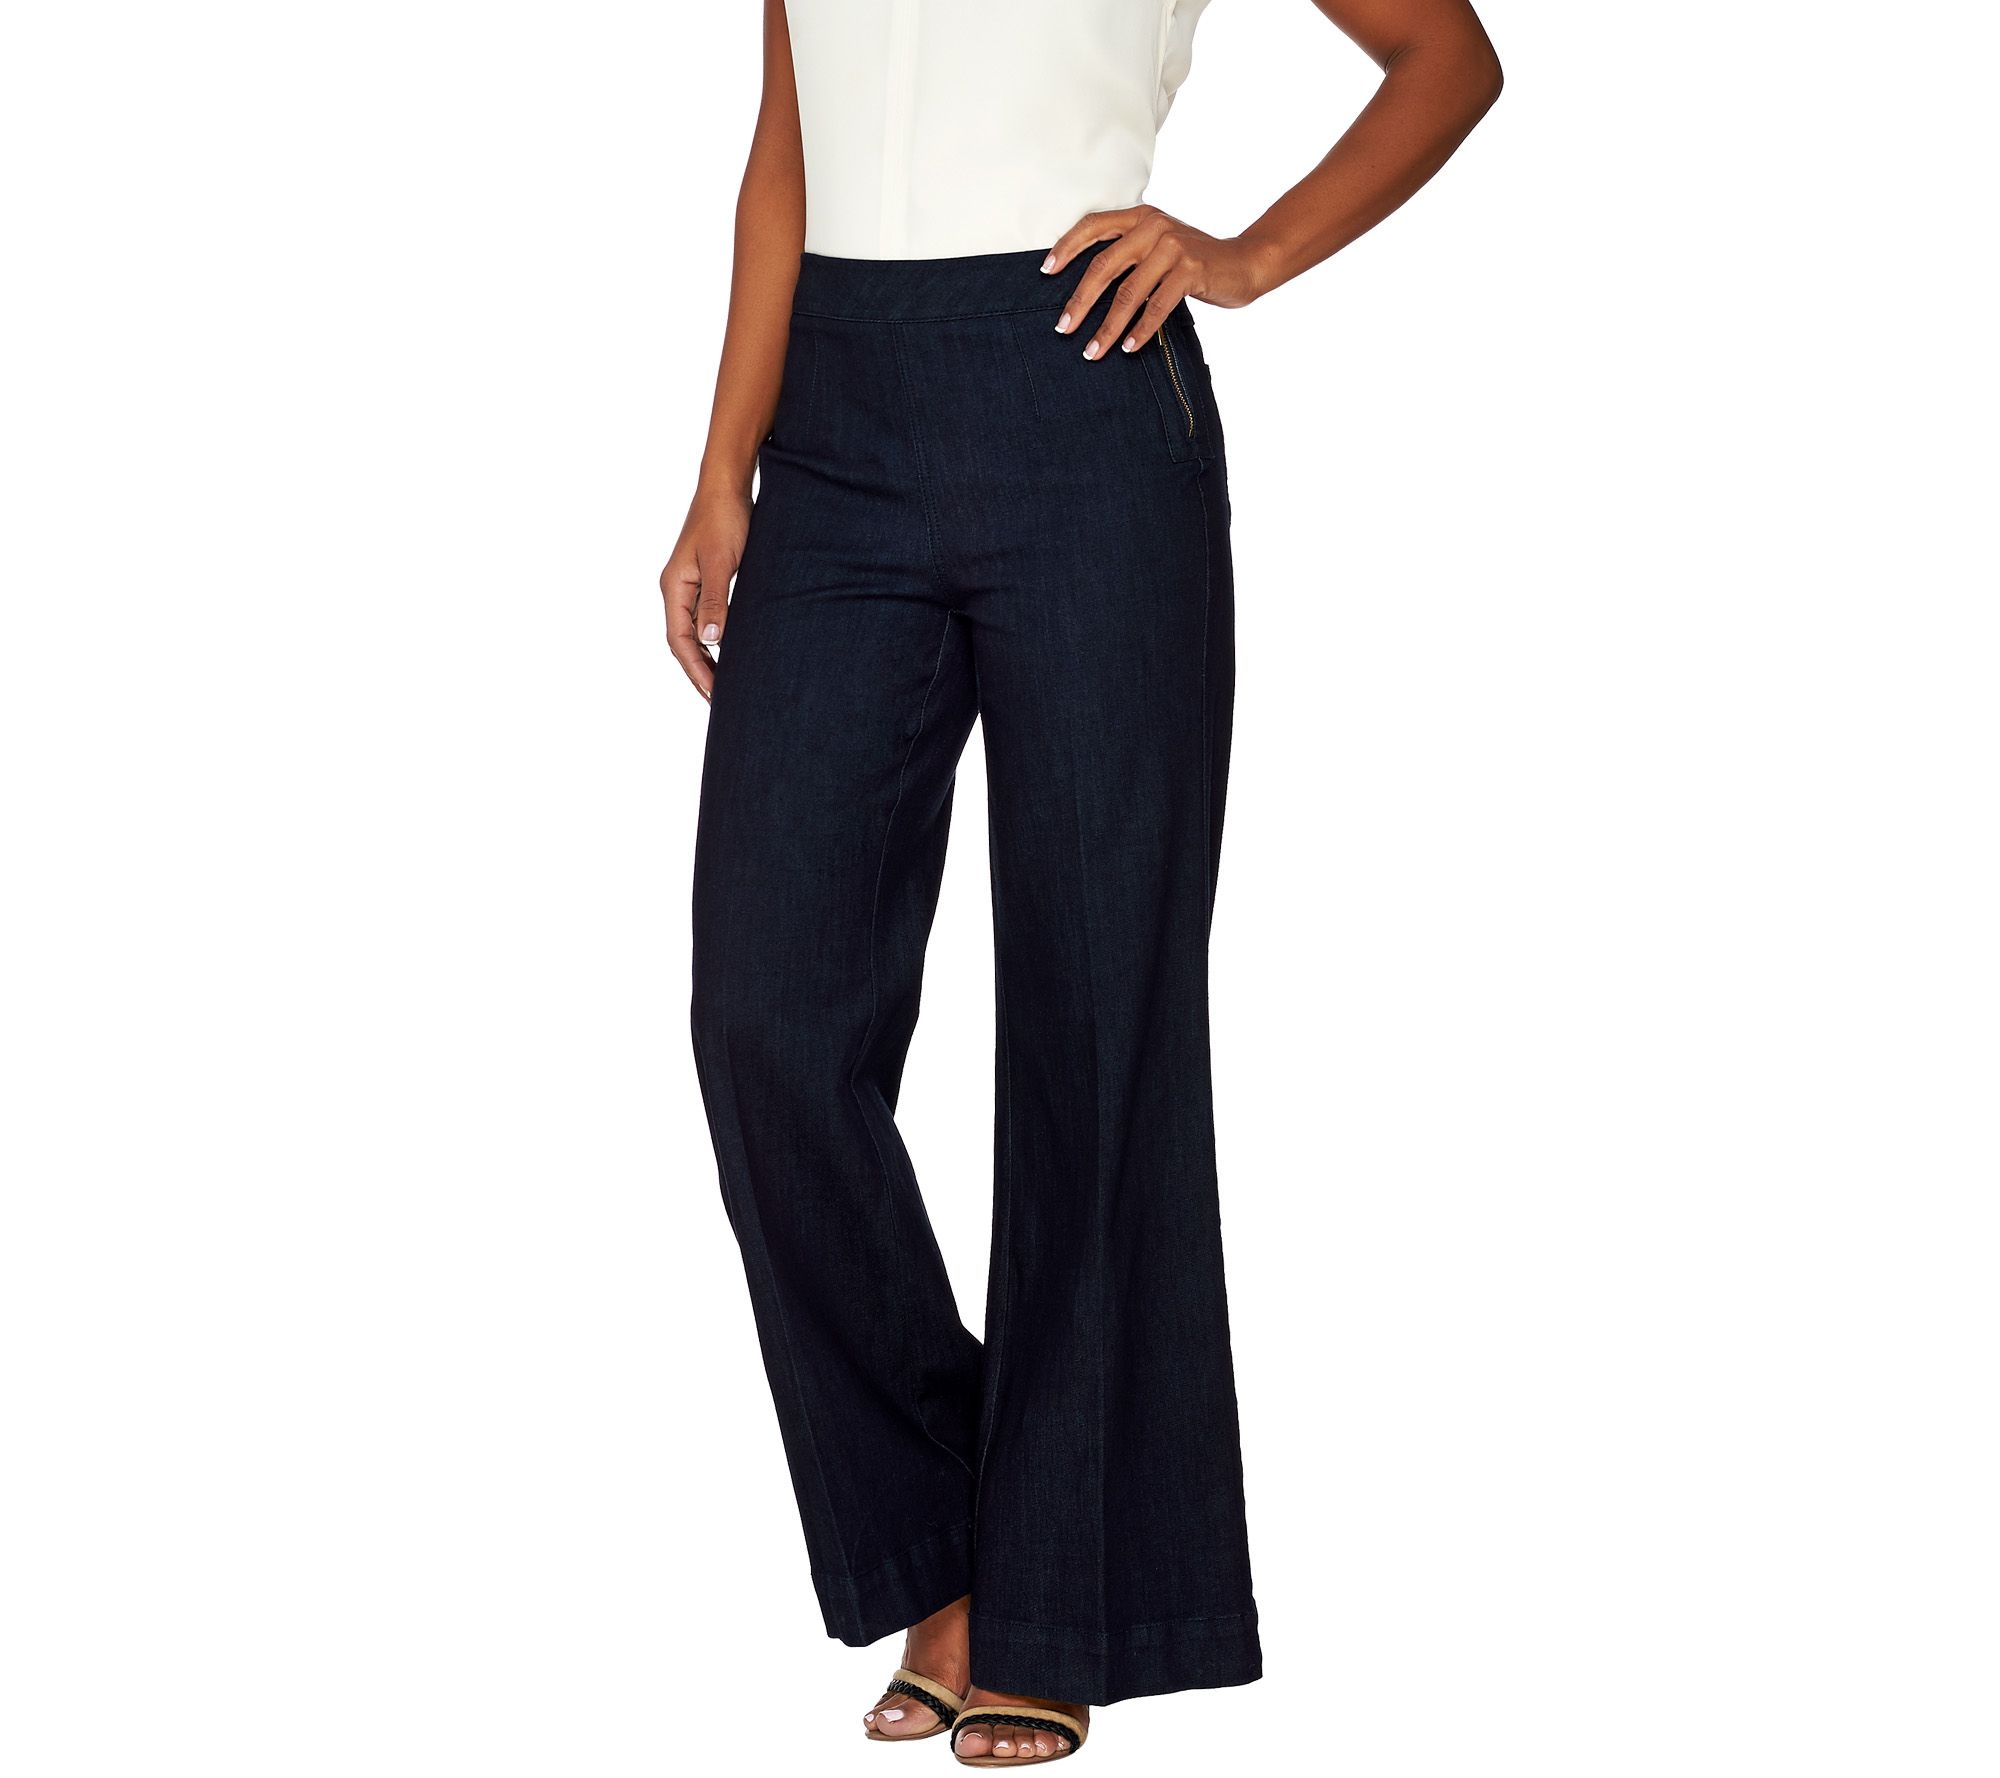 G.I.L.I. Regular Wide Leg Denim Jeans - Page 1 — QVC.com